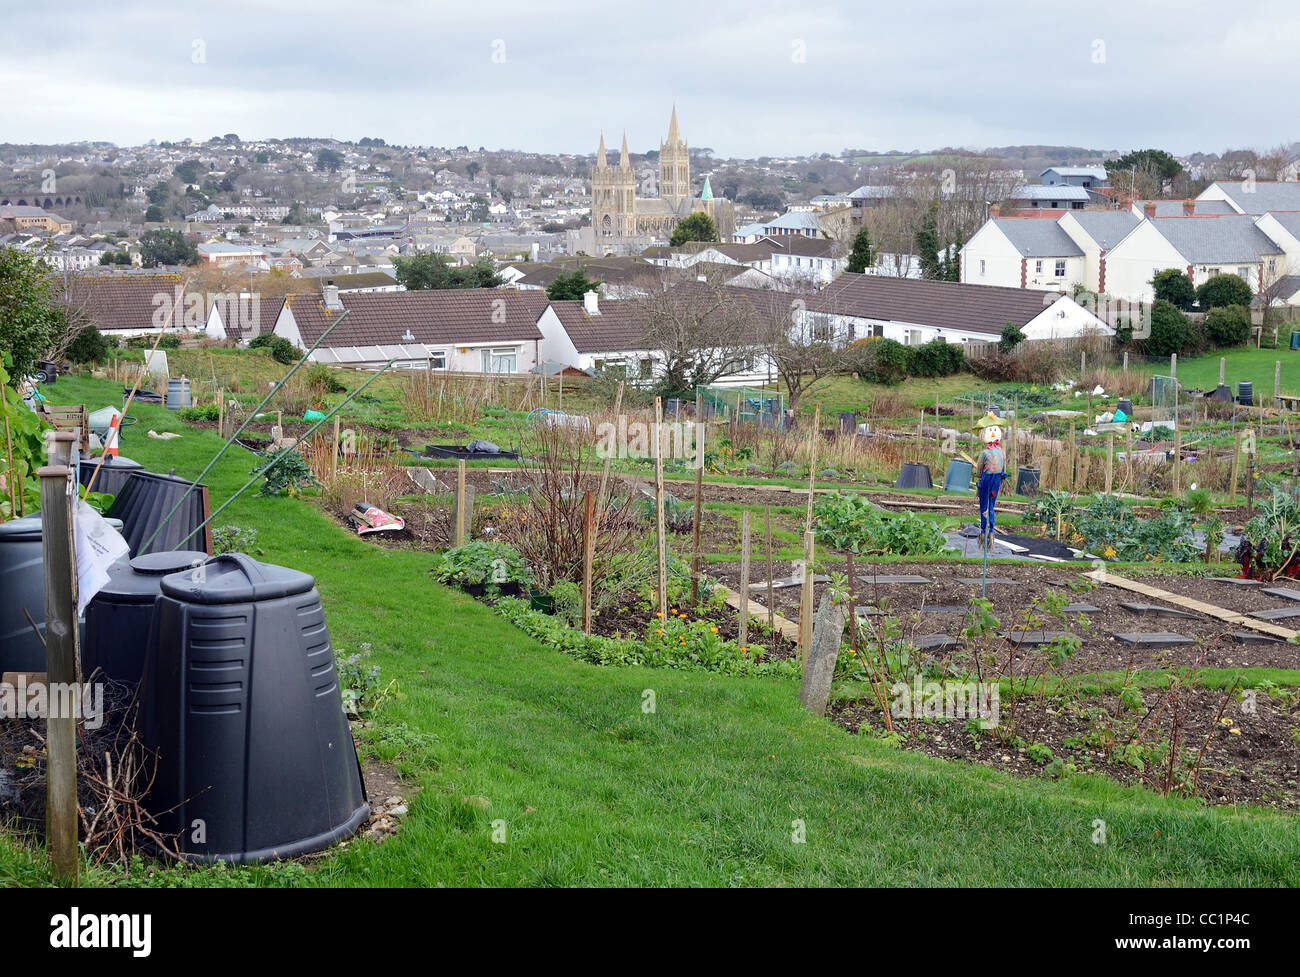 council owned allotments in Truro, Cornwall, UK - Stock Image